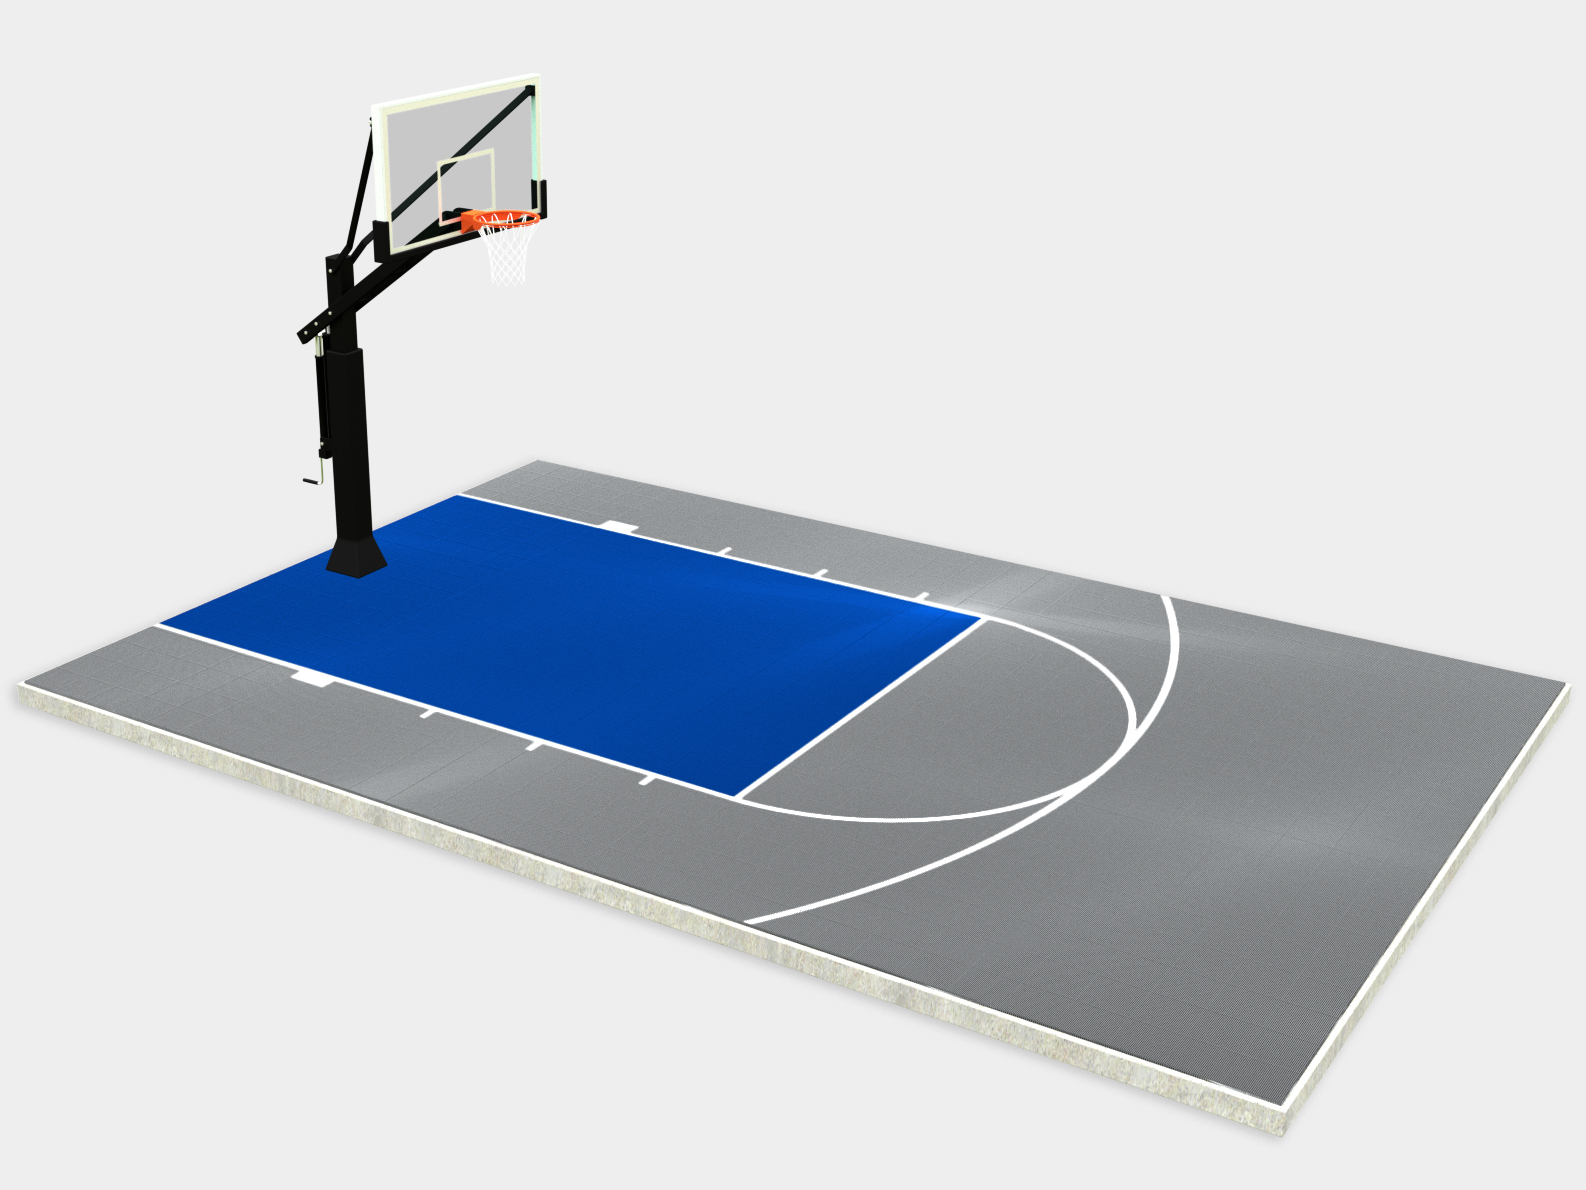 20' x 30' Basketball Court